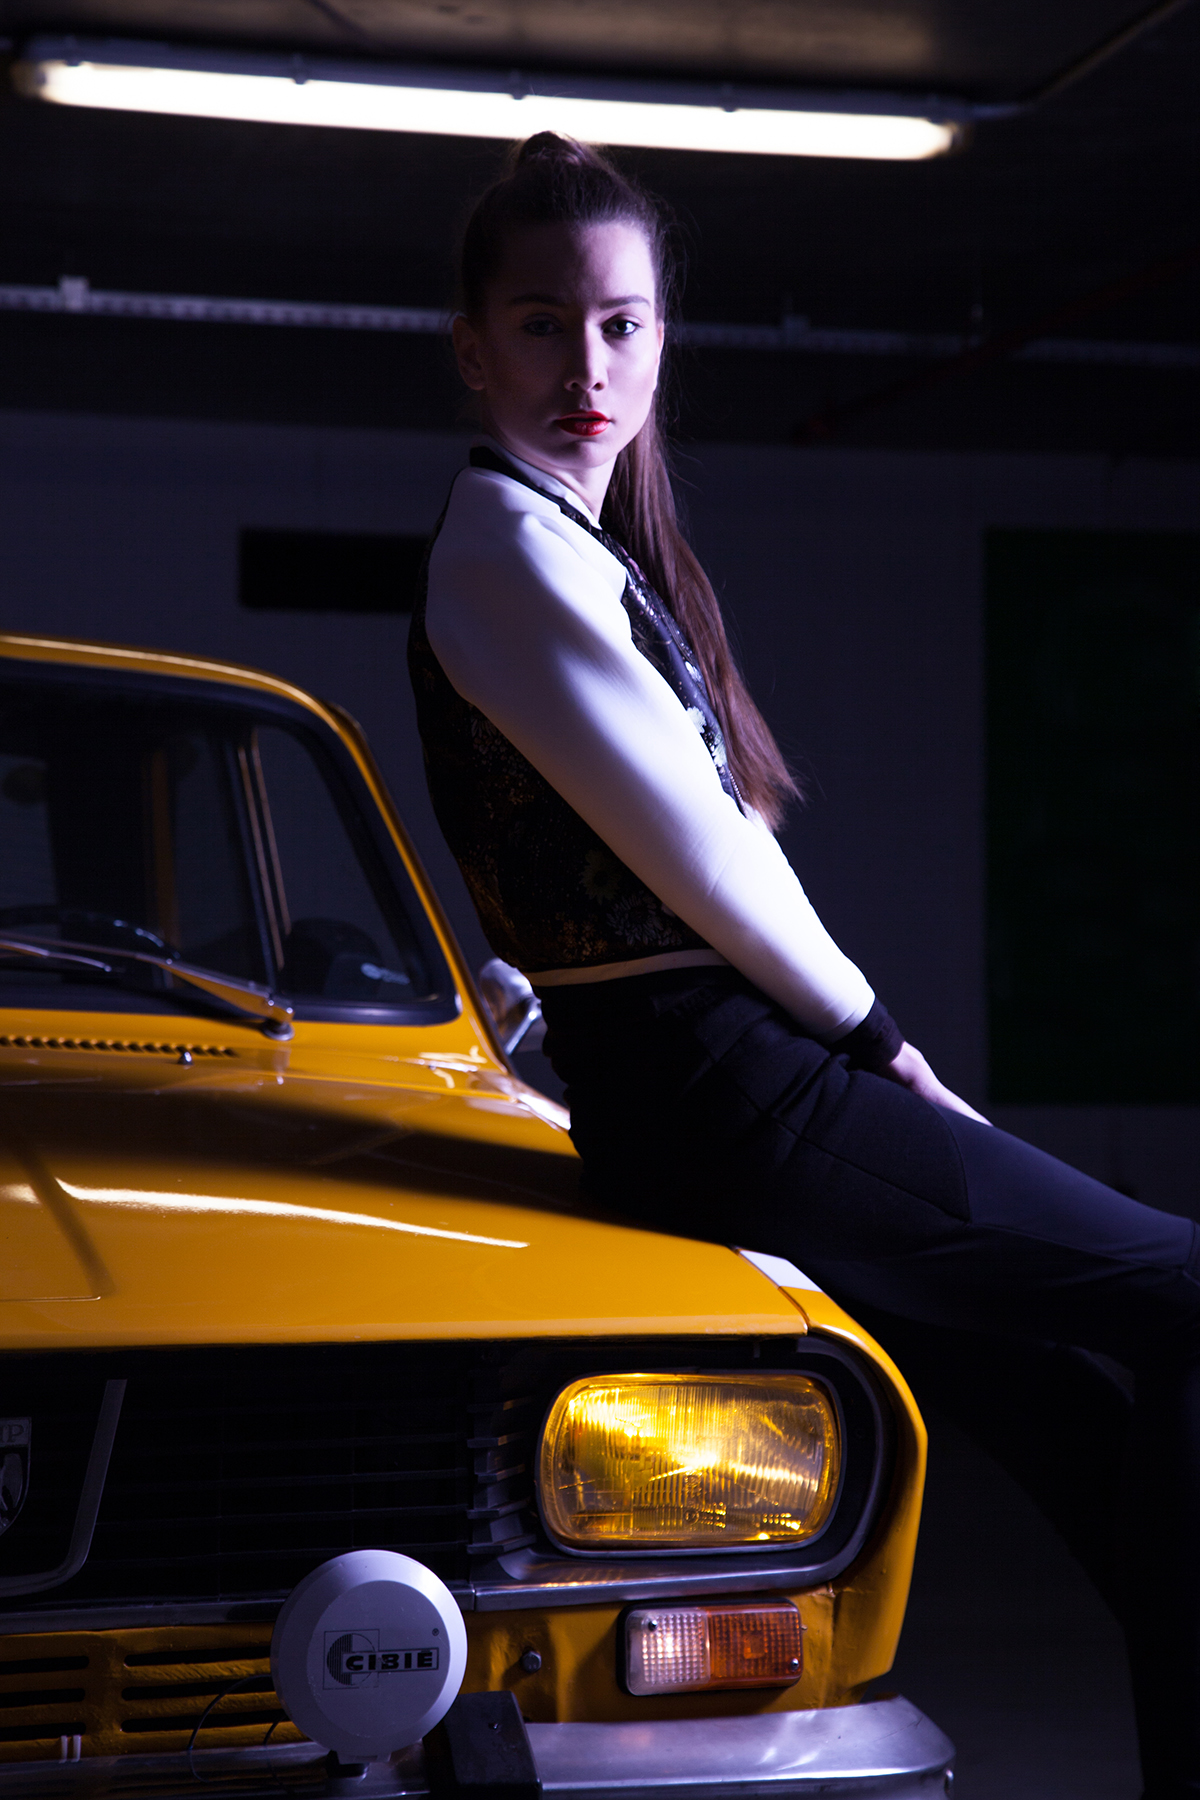 Dacia editorial photography